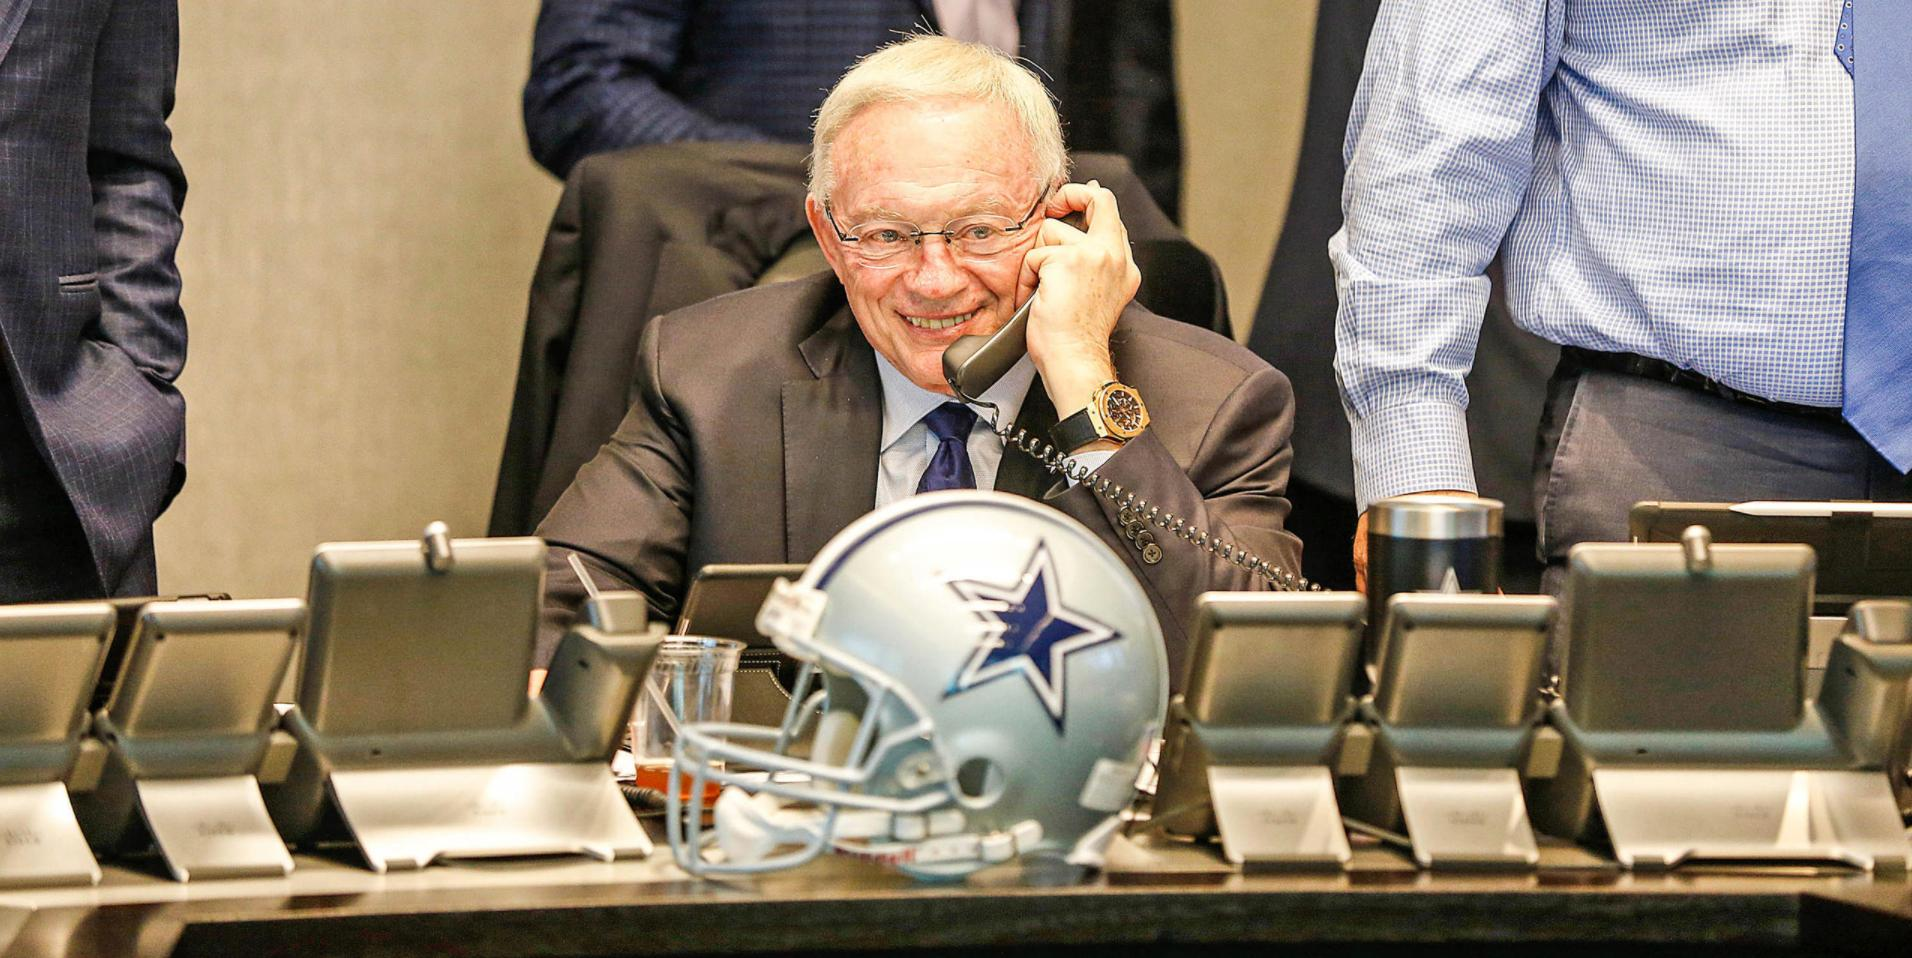 Mailbag: Willing To Trade Up For The Right Prospect? Free Agency Attitude?  Answers: https://t.co/1cpK4zI9FC https://t.co/4jJqVPj6Ac